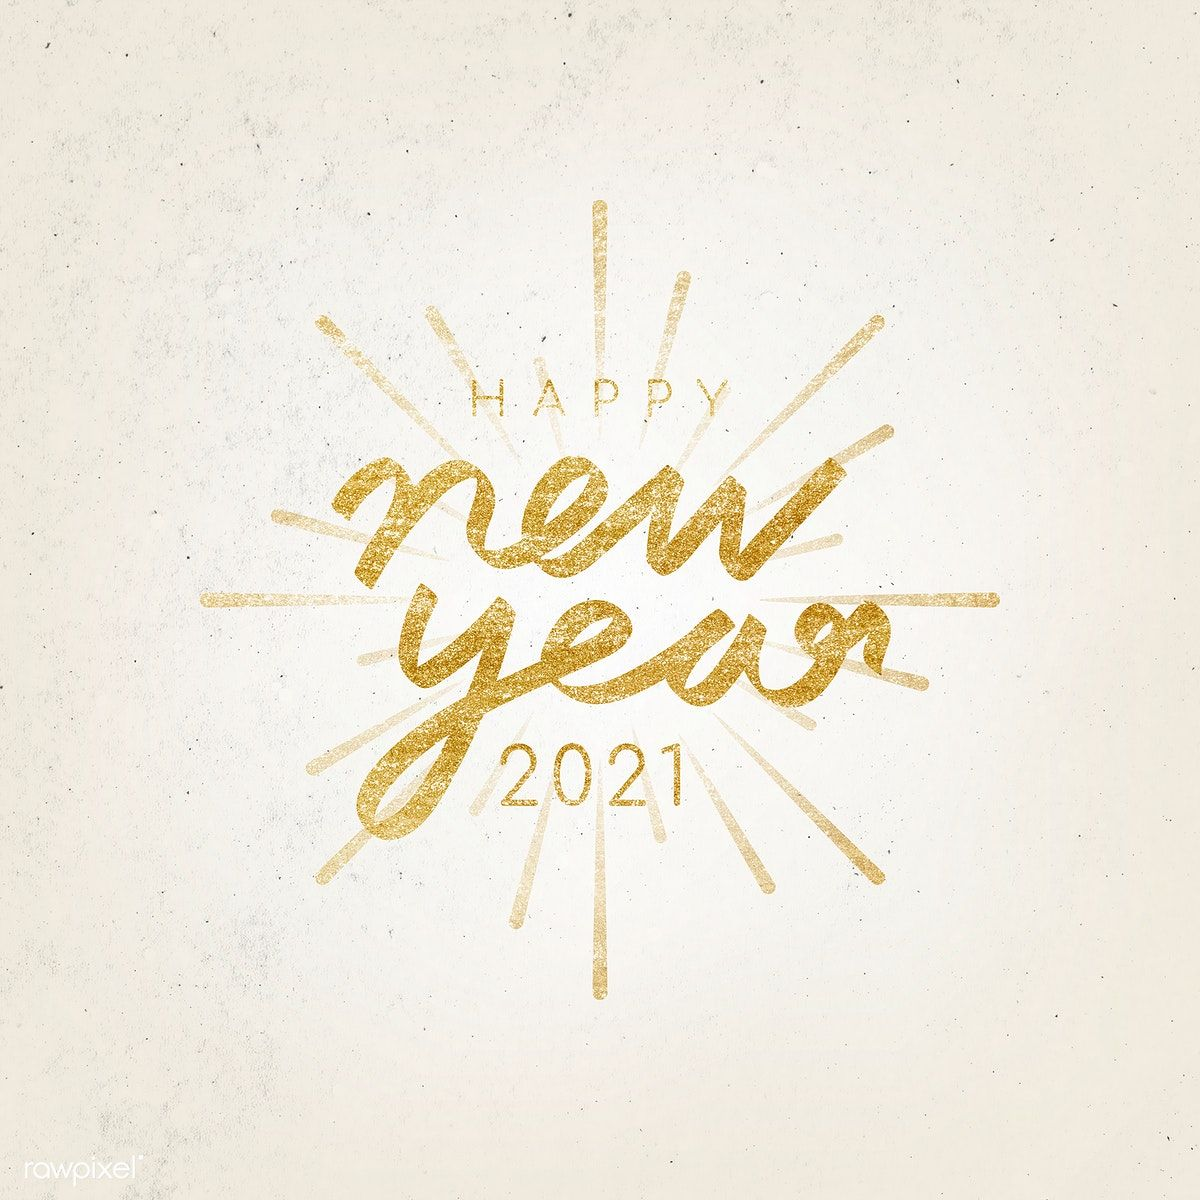 Happy New Year 2021 typography illustration | free image ...